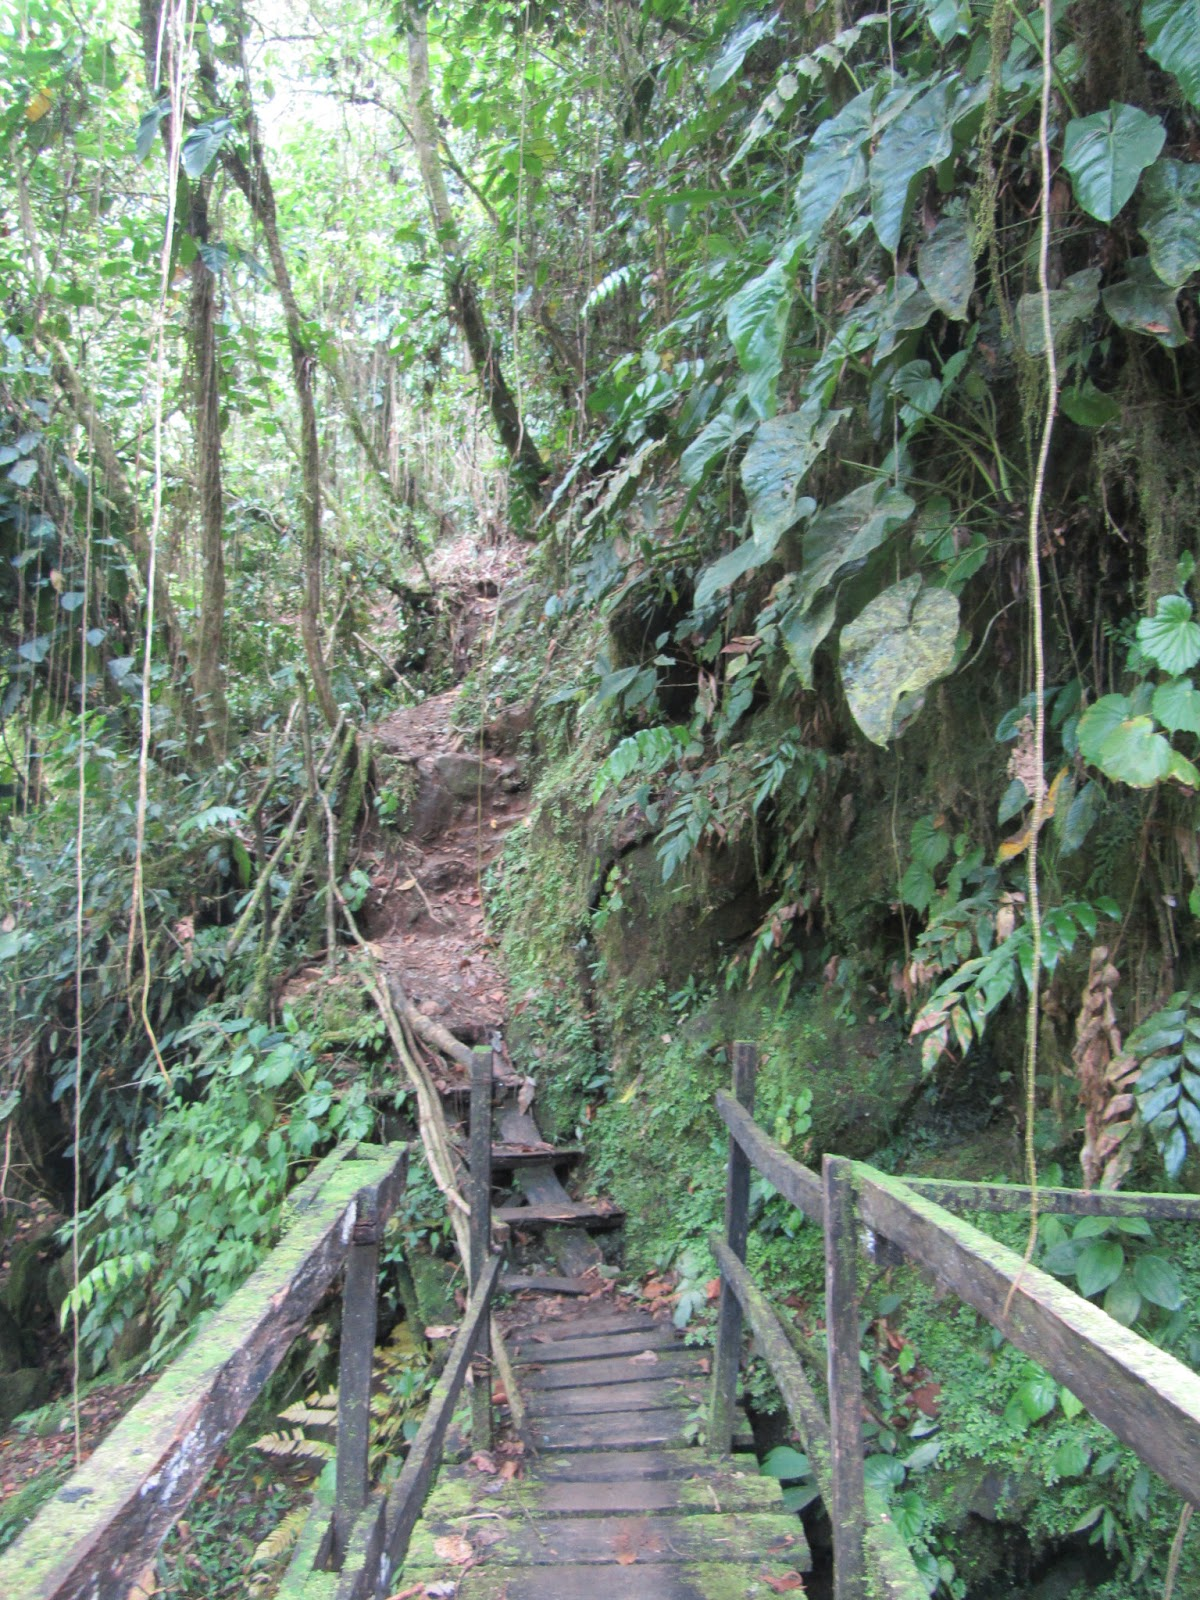 The Lost City (Ciudad Perdida) trek in Colombia